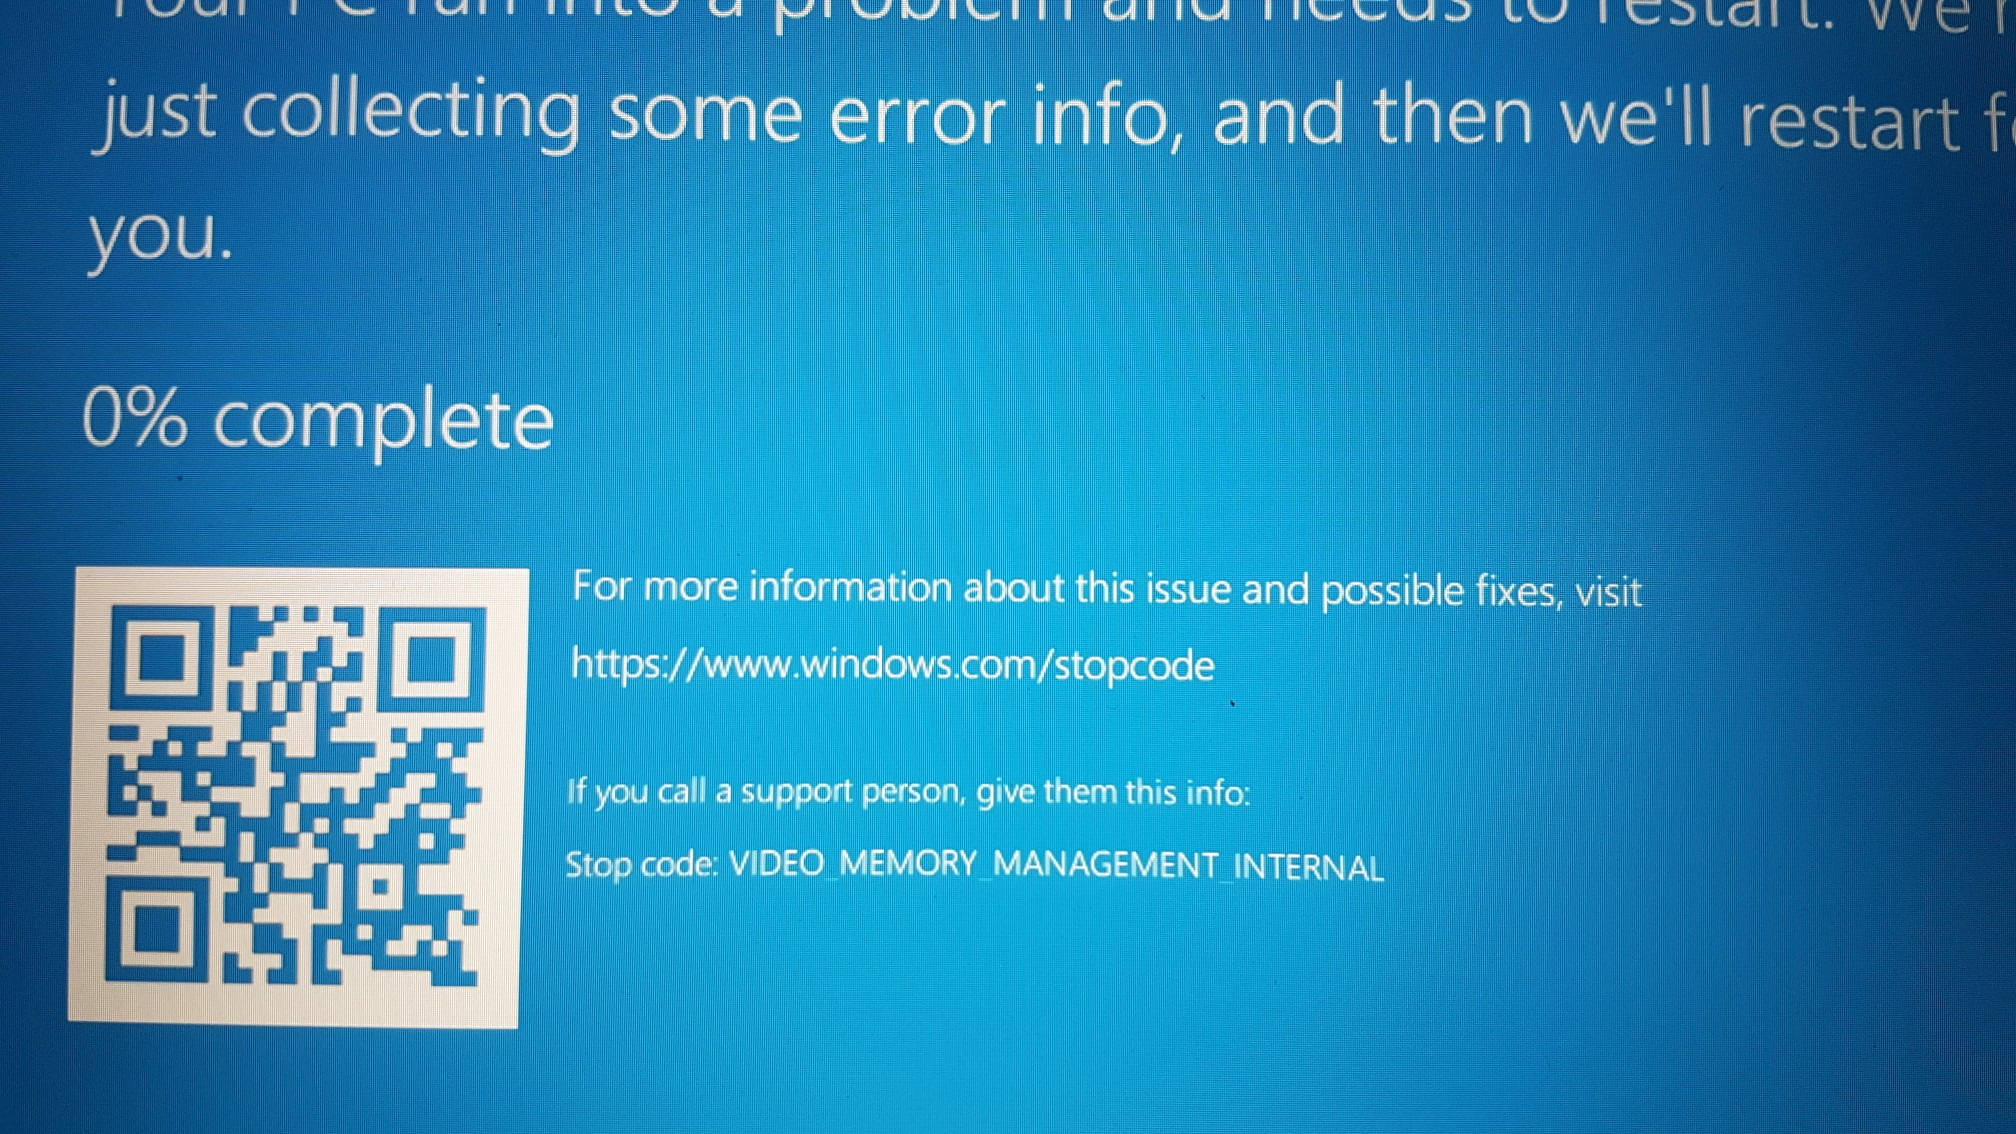 Windows 10 - BCD Boot Error/Boot Configuration Data for your